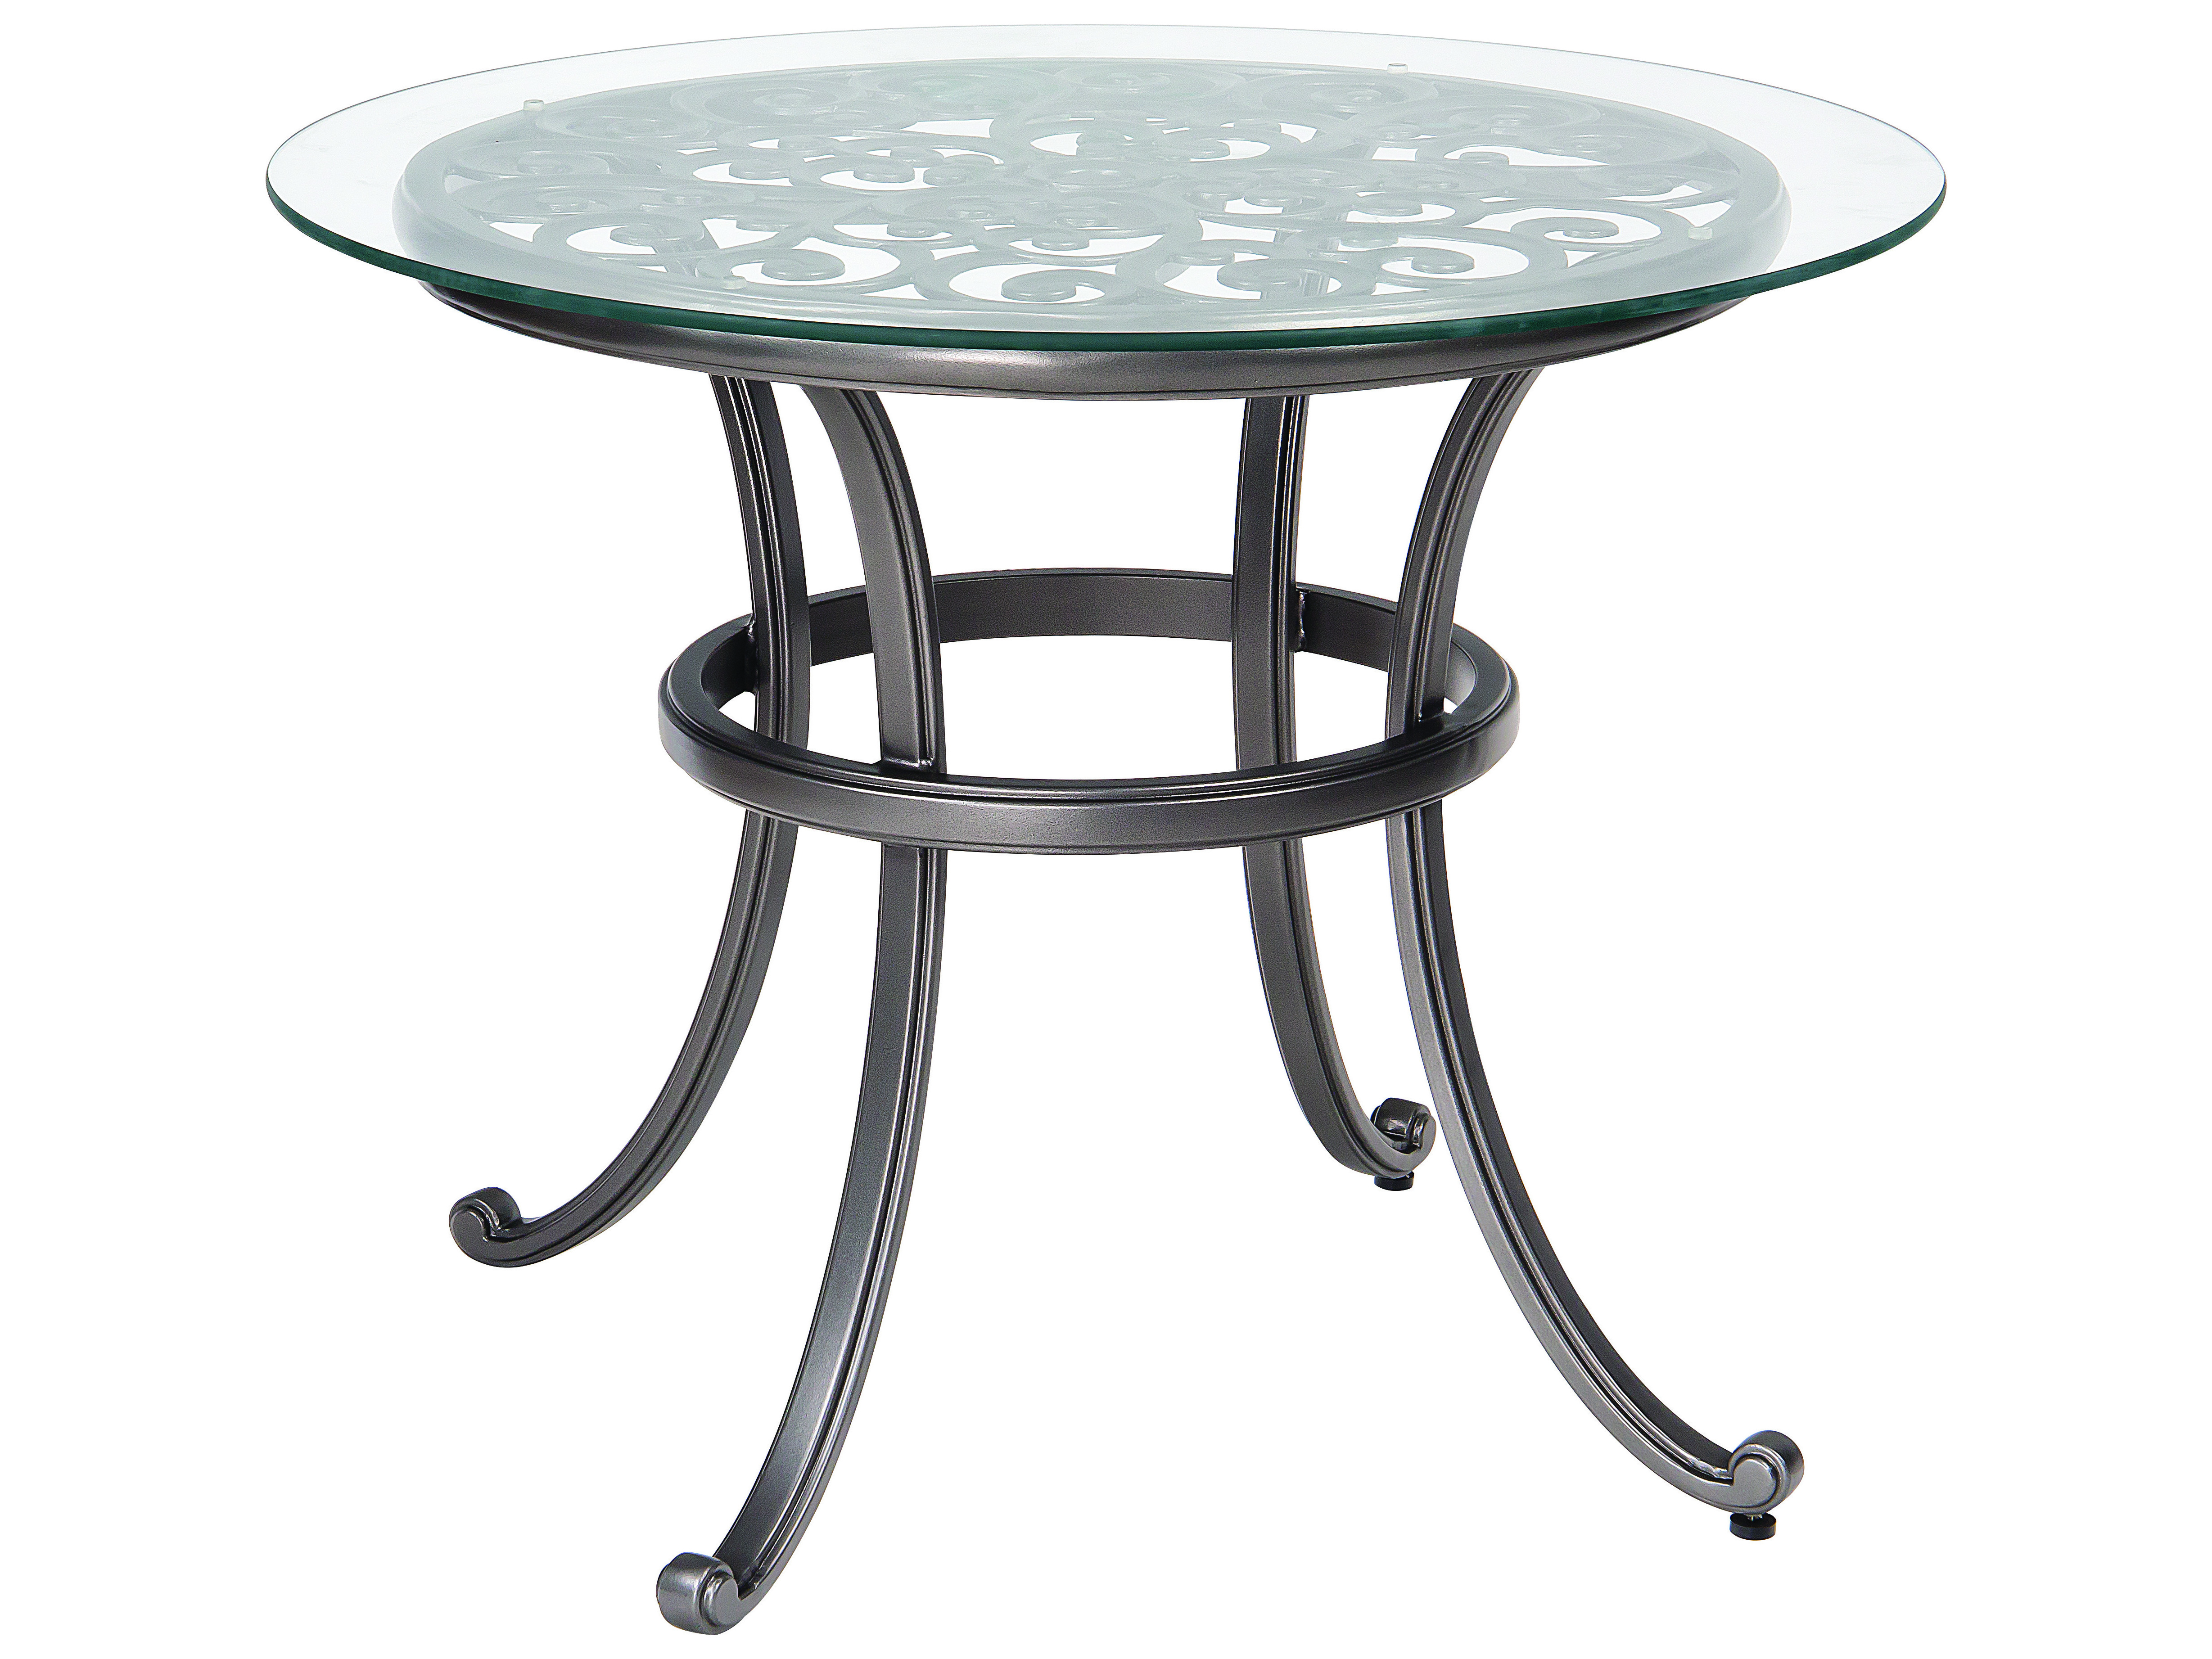 Table Bistrot Aluminium Woodard New Orleans Cast Aluminum 36 Round Glass Top